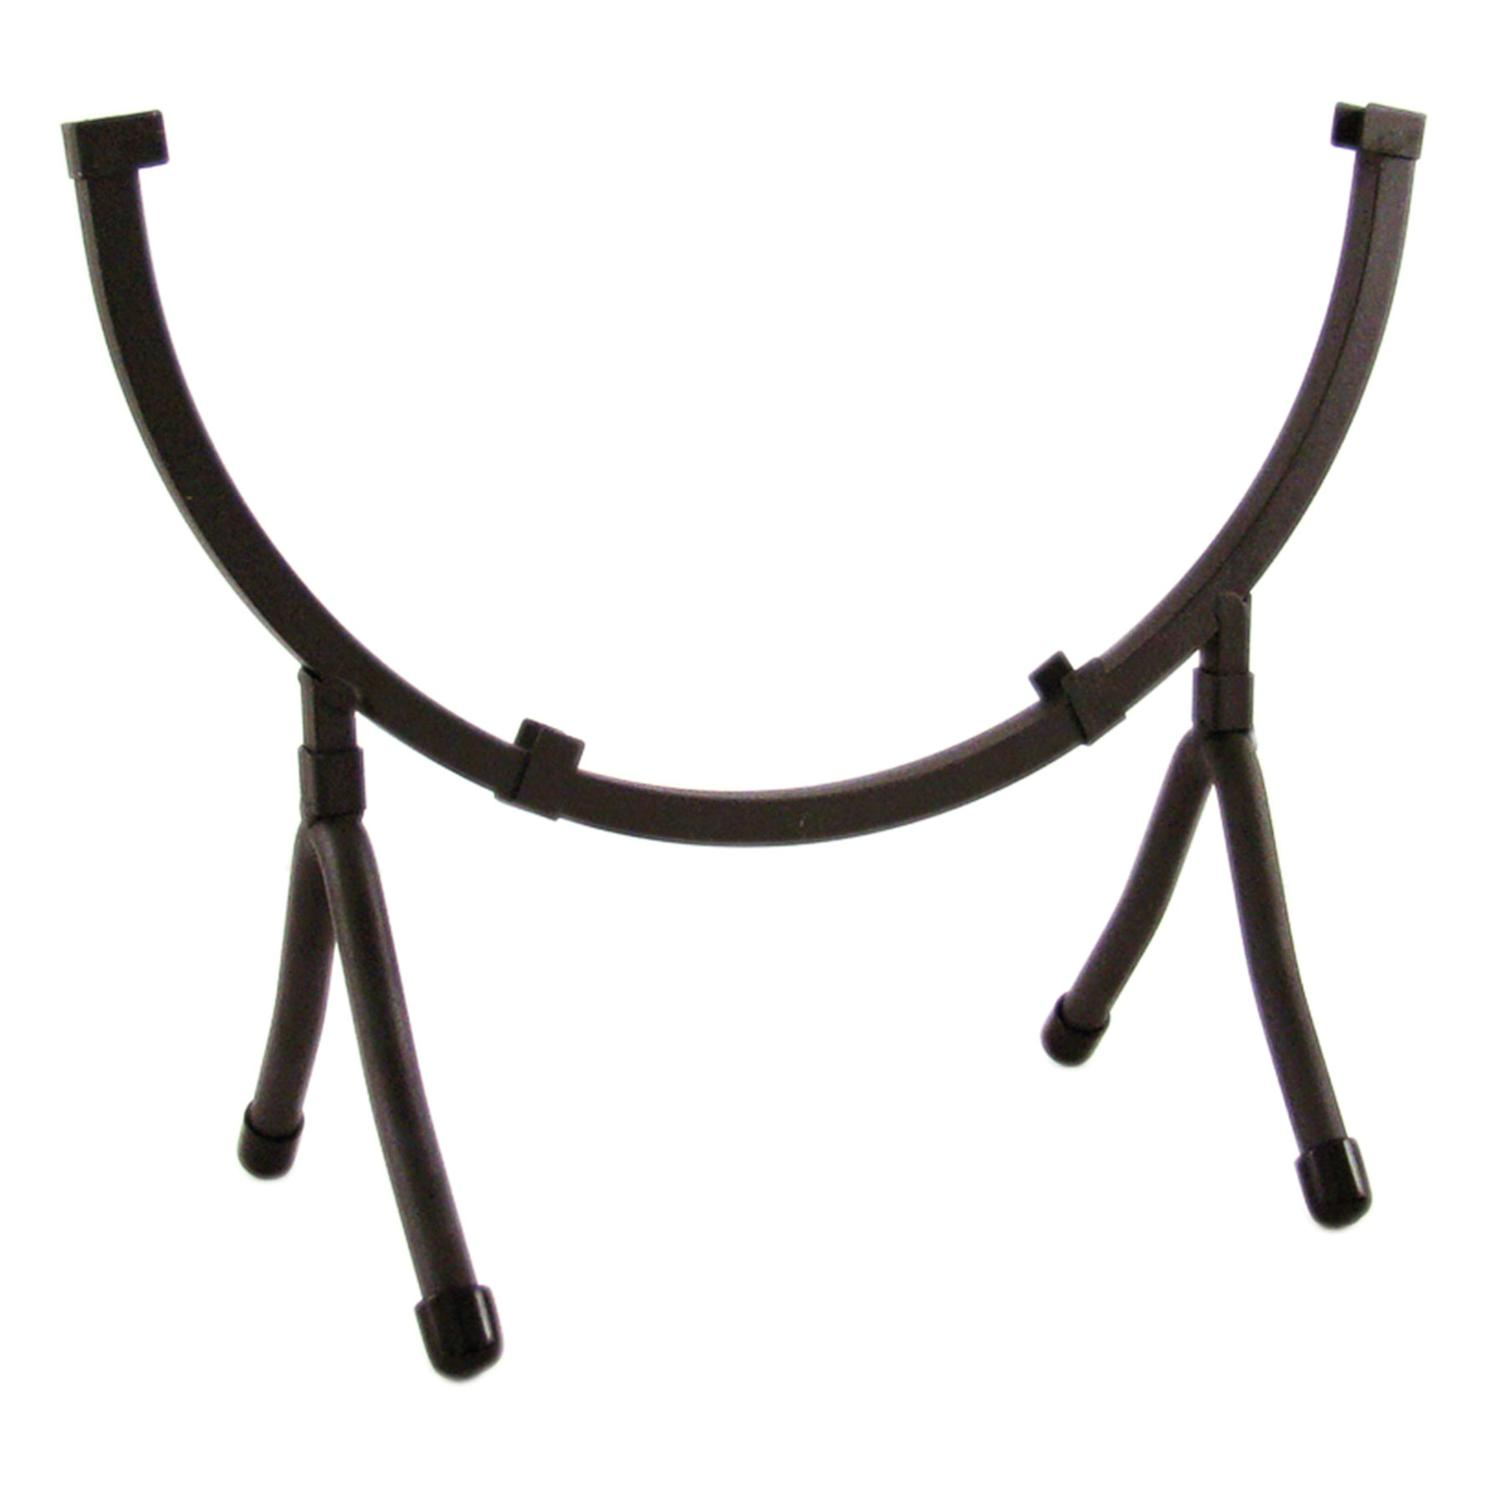 10 Round Black Iron Art Holder